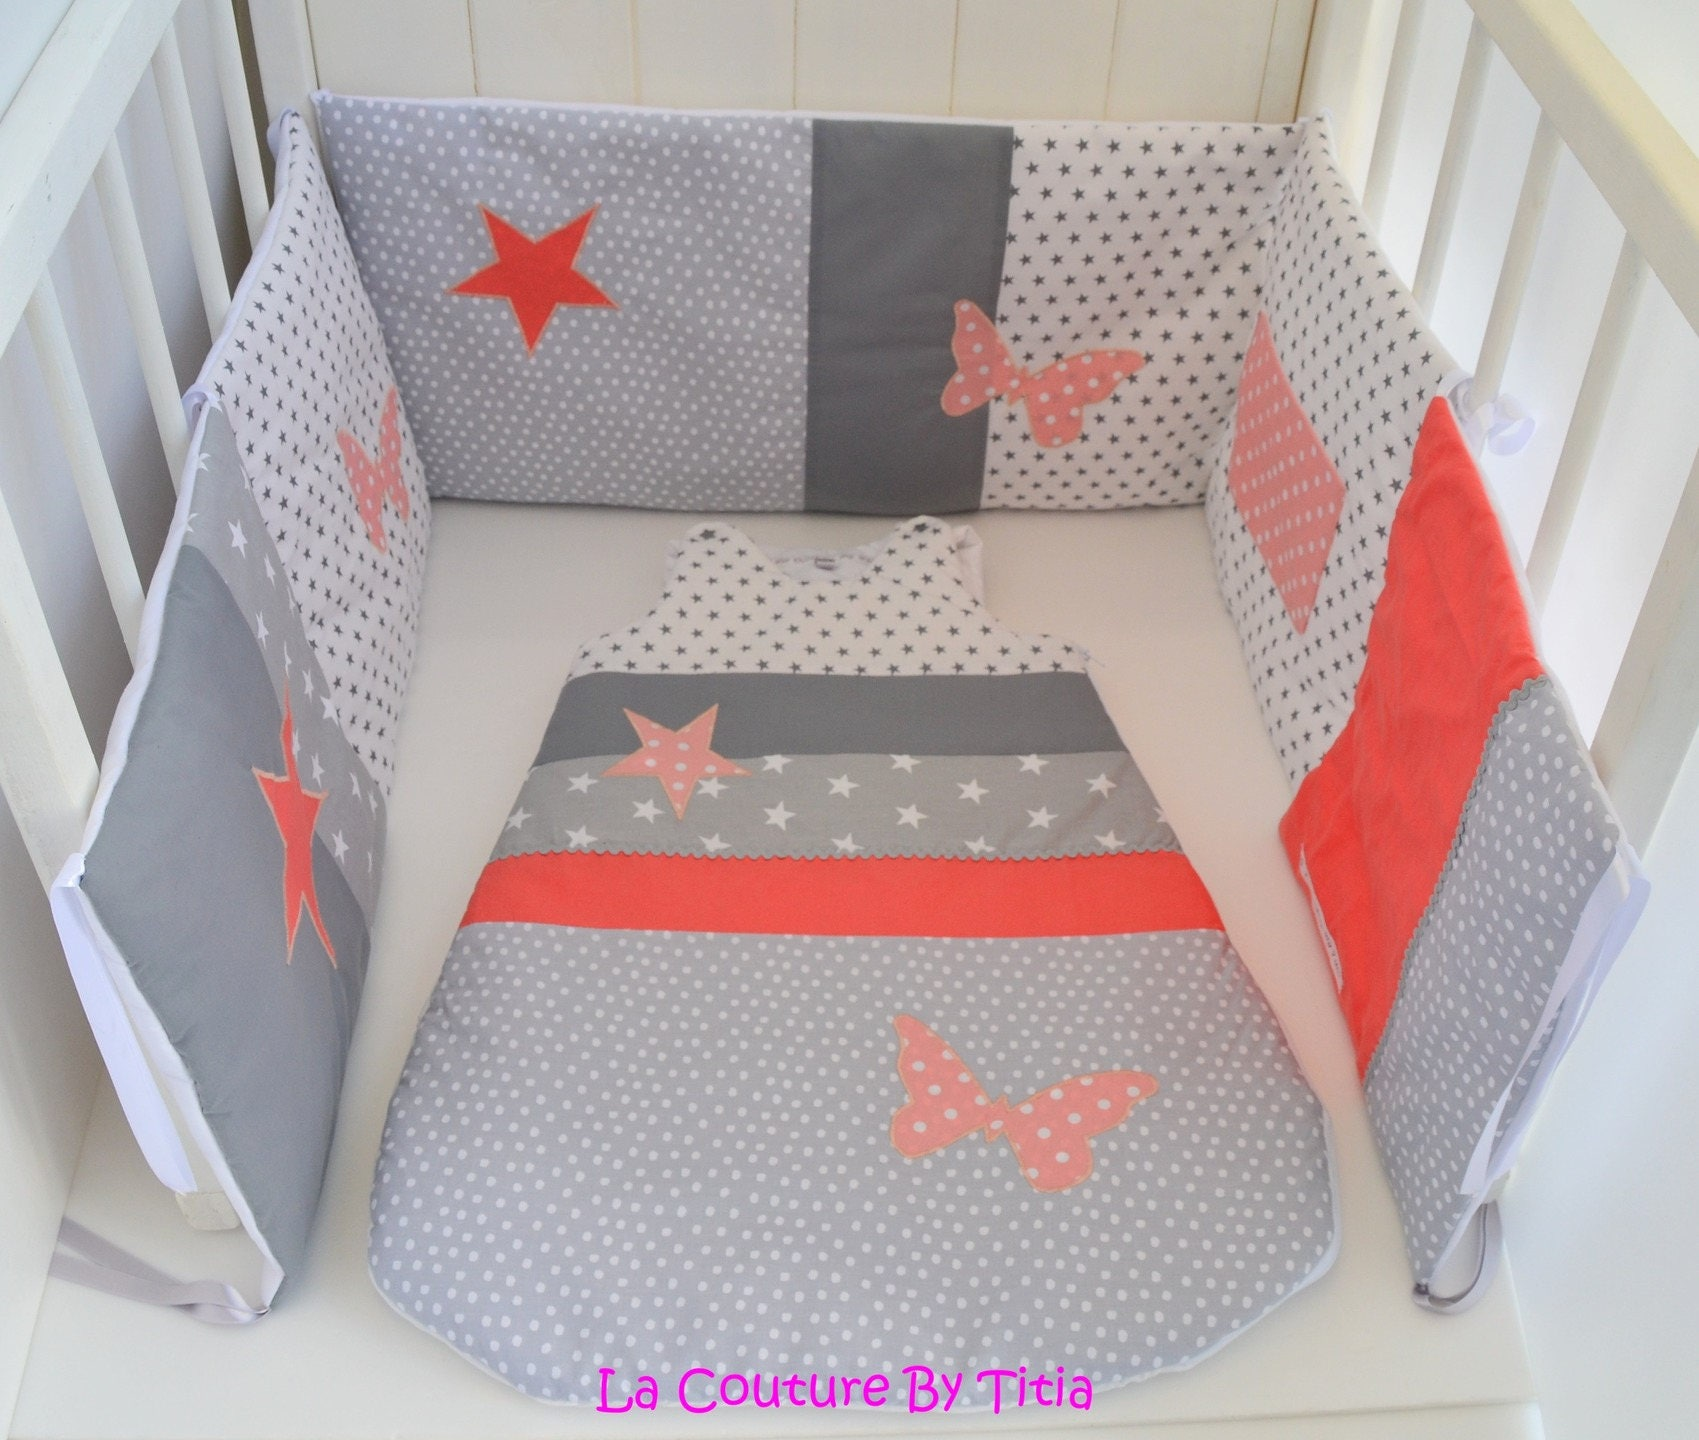 tour de lit et gigoteuse fait main papillon gris et corail. Black Bedroom Furniture Sets. Home Design Ideas